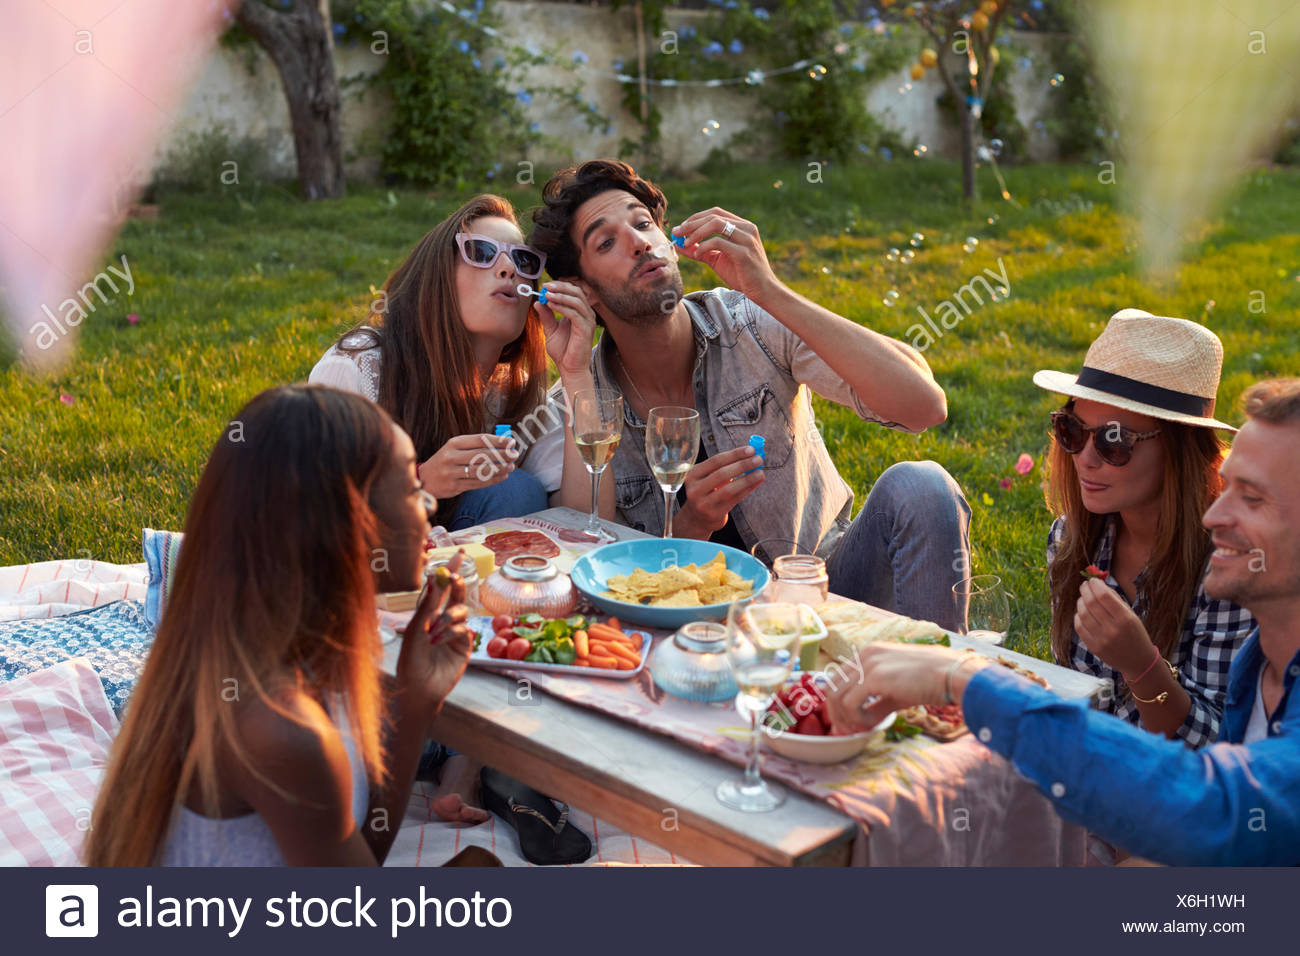 Friends Blowing Bubbles During Picnic In Garden Stock Photo